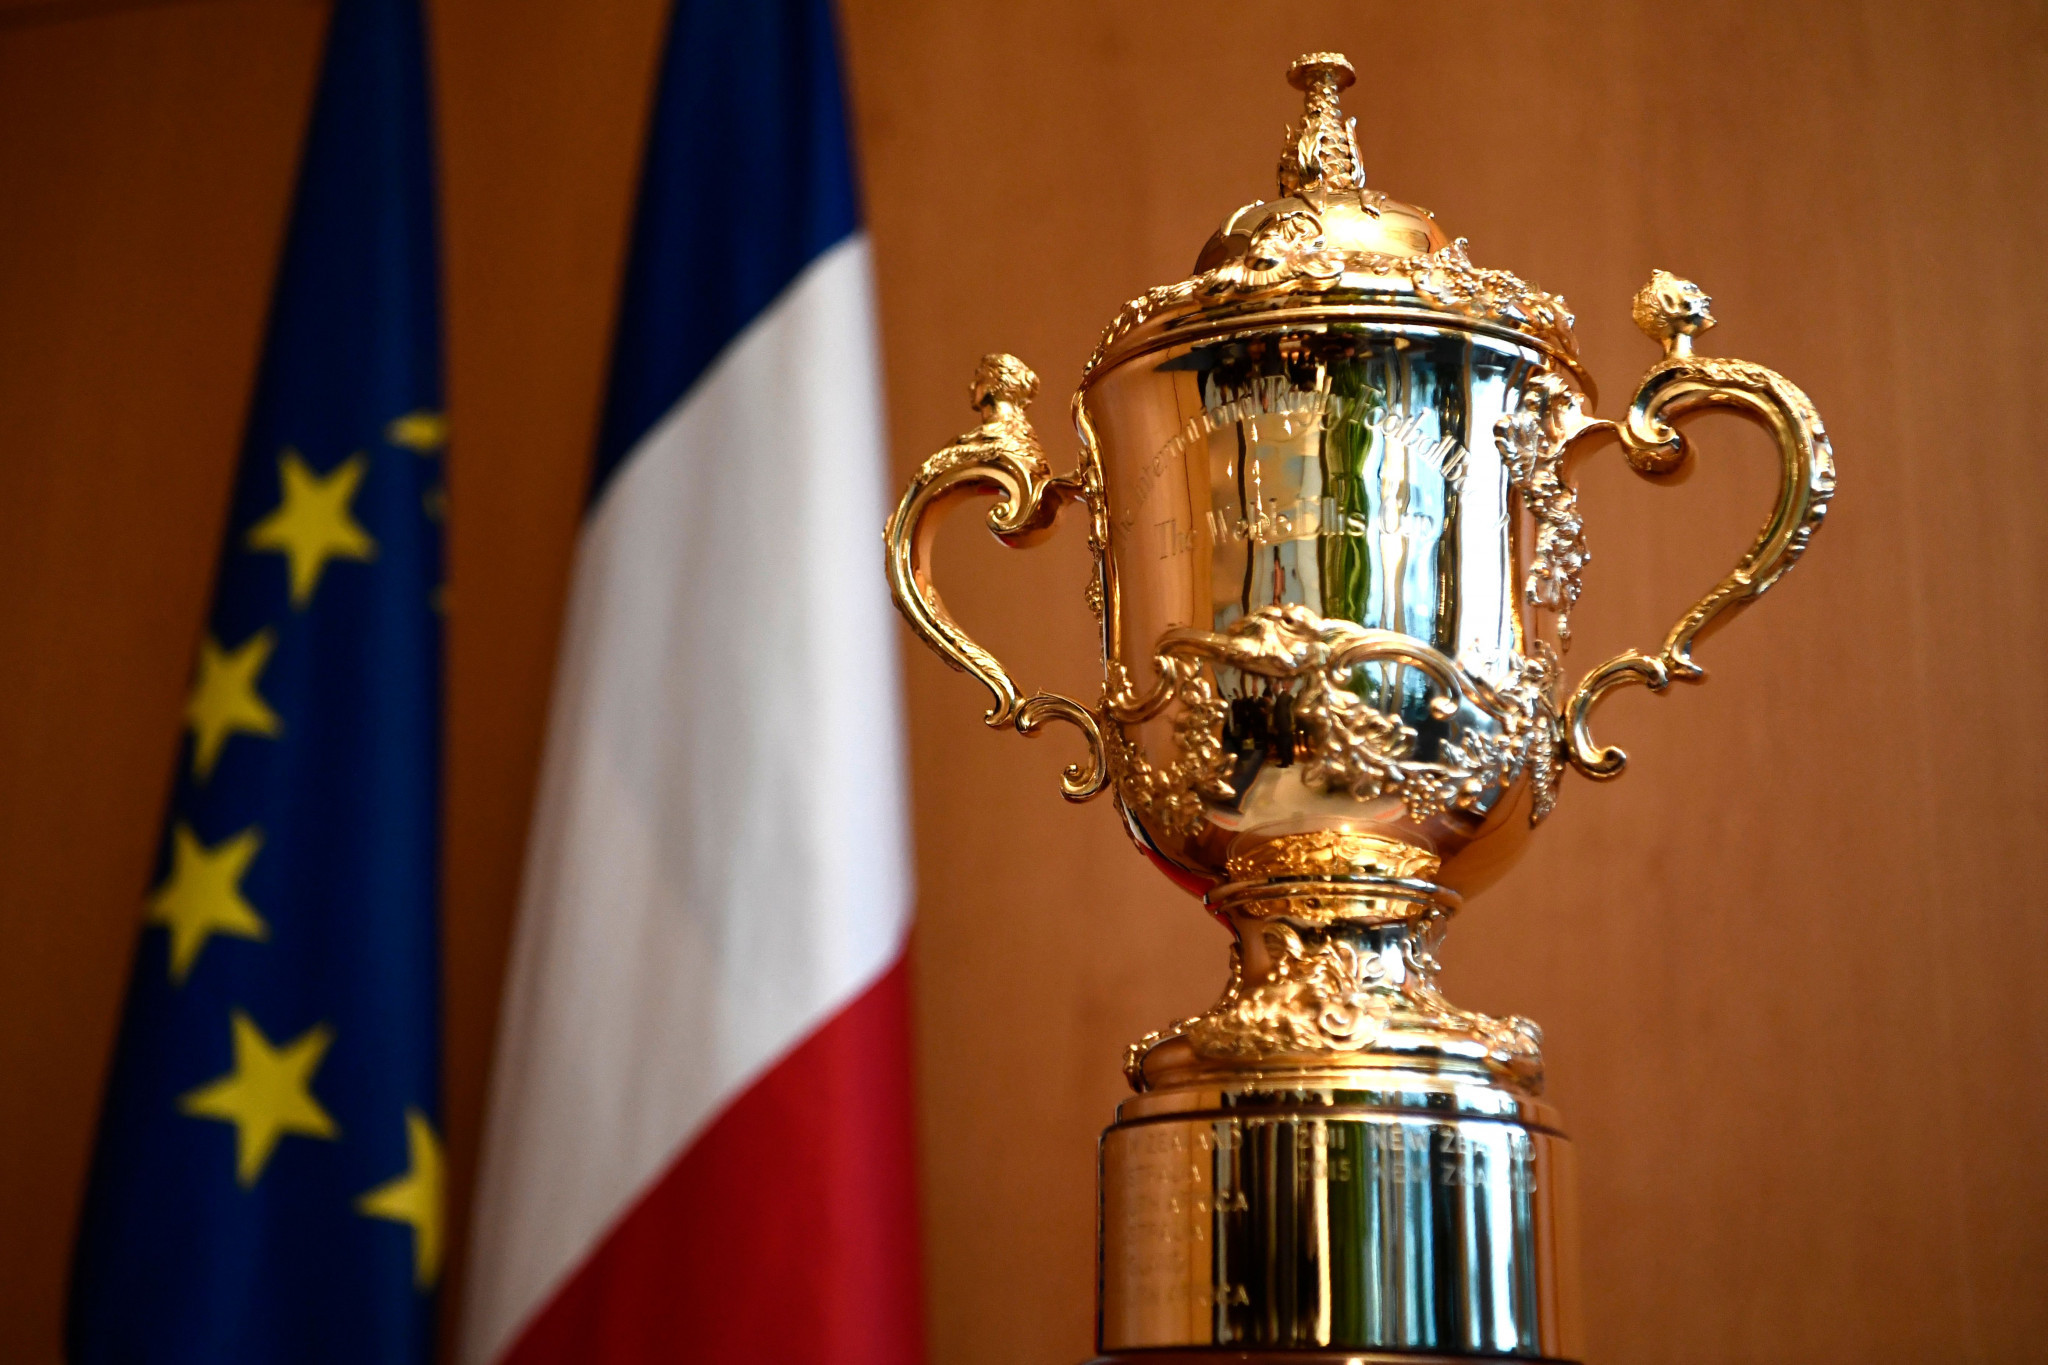 Prime Minister at signing as France begins preparations for 2023 Rugby World Cup